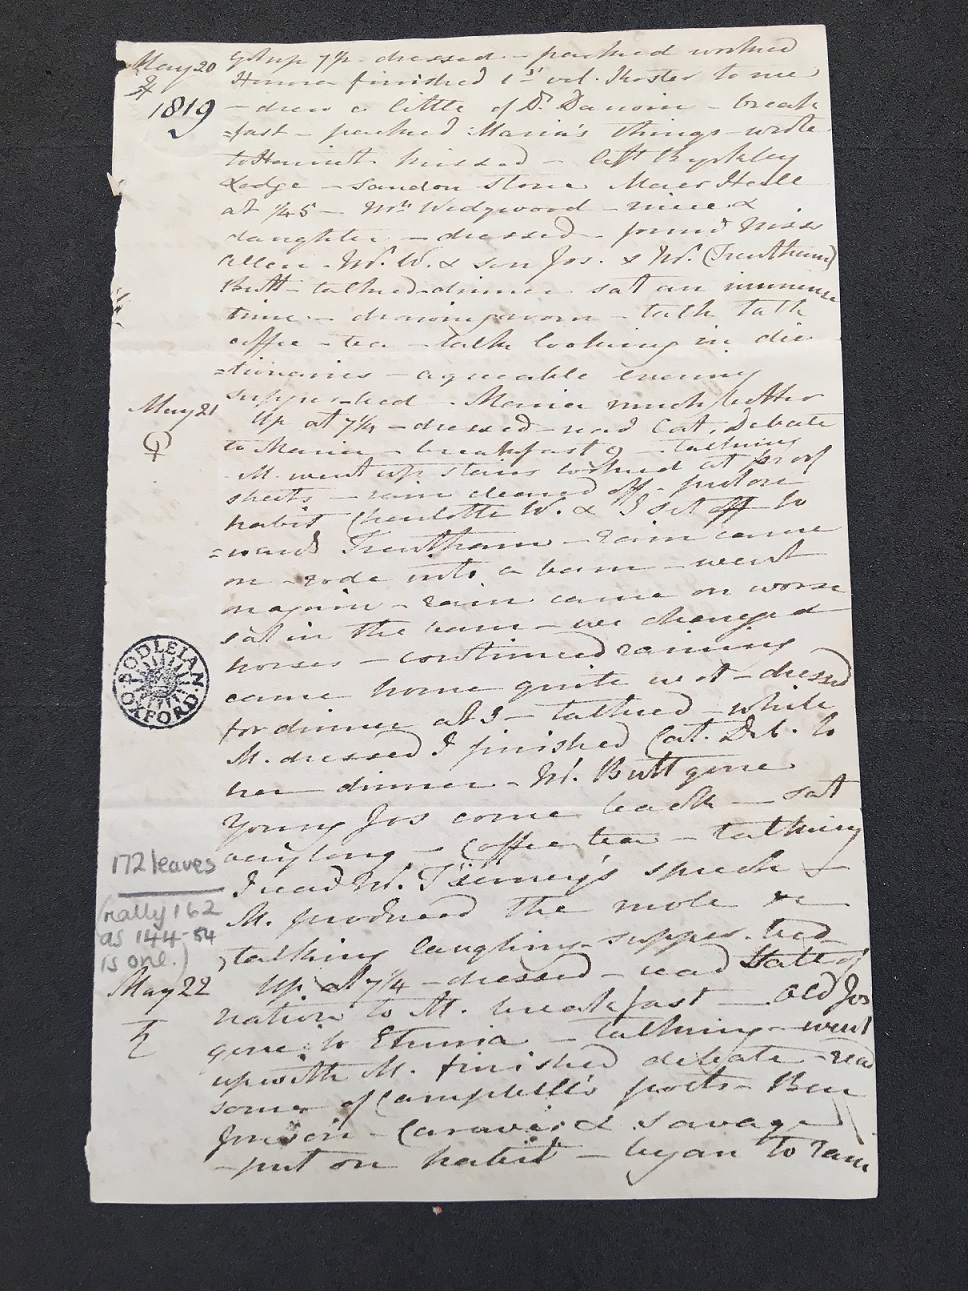 First page of May 1819 (MS. Eng. Lett. c. 744 fol. 130)